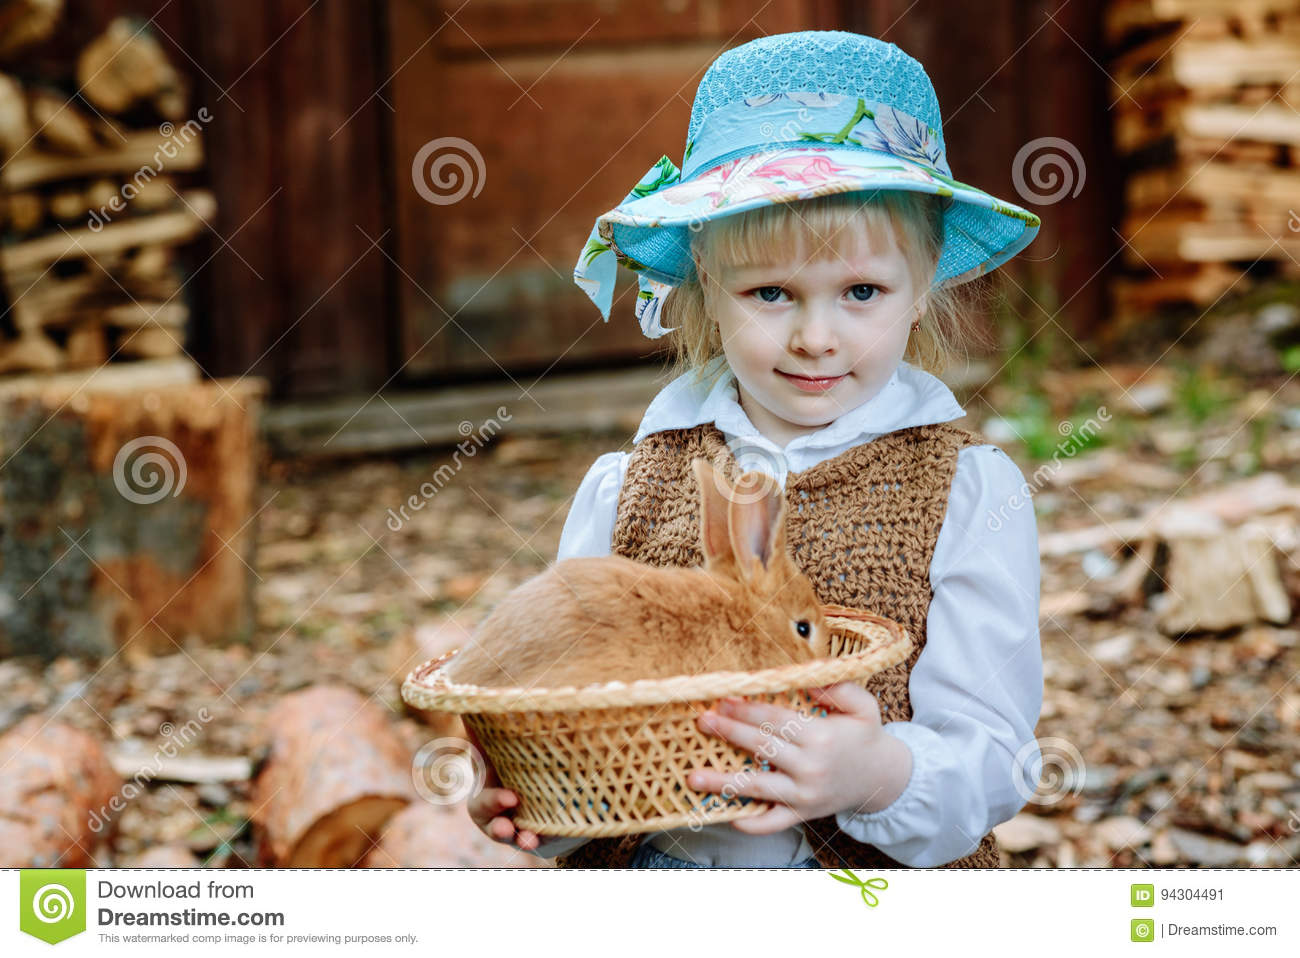 Blonde Girl In The Hat Holding A Rabbit Stock Image - Image of color ... 911dd2469ff5